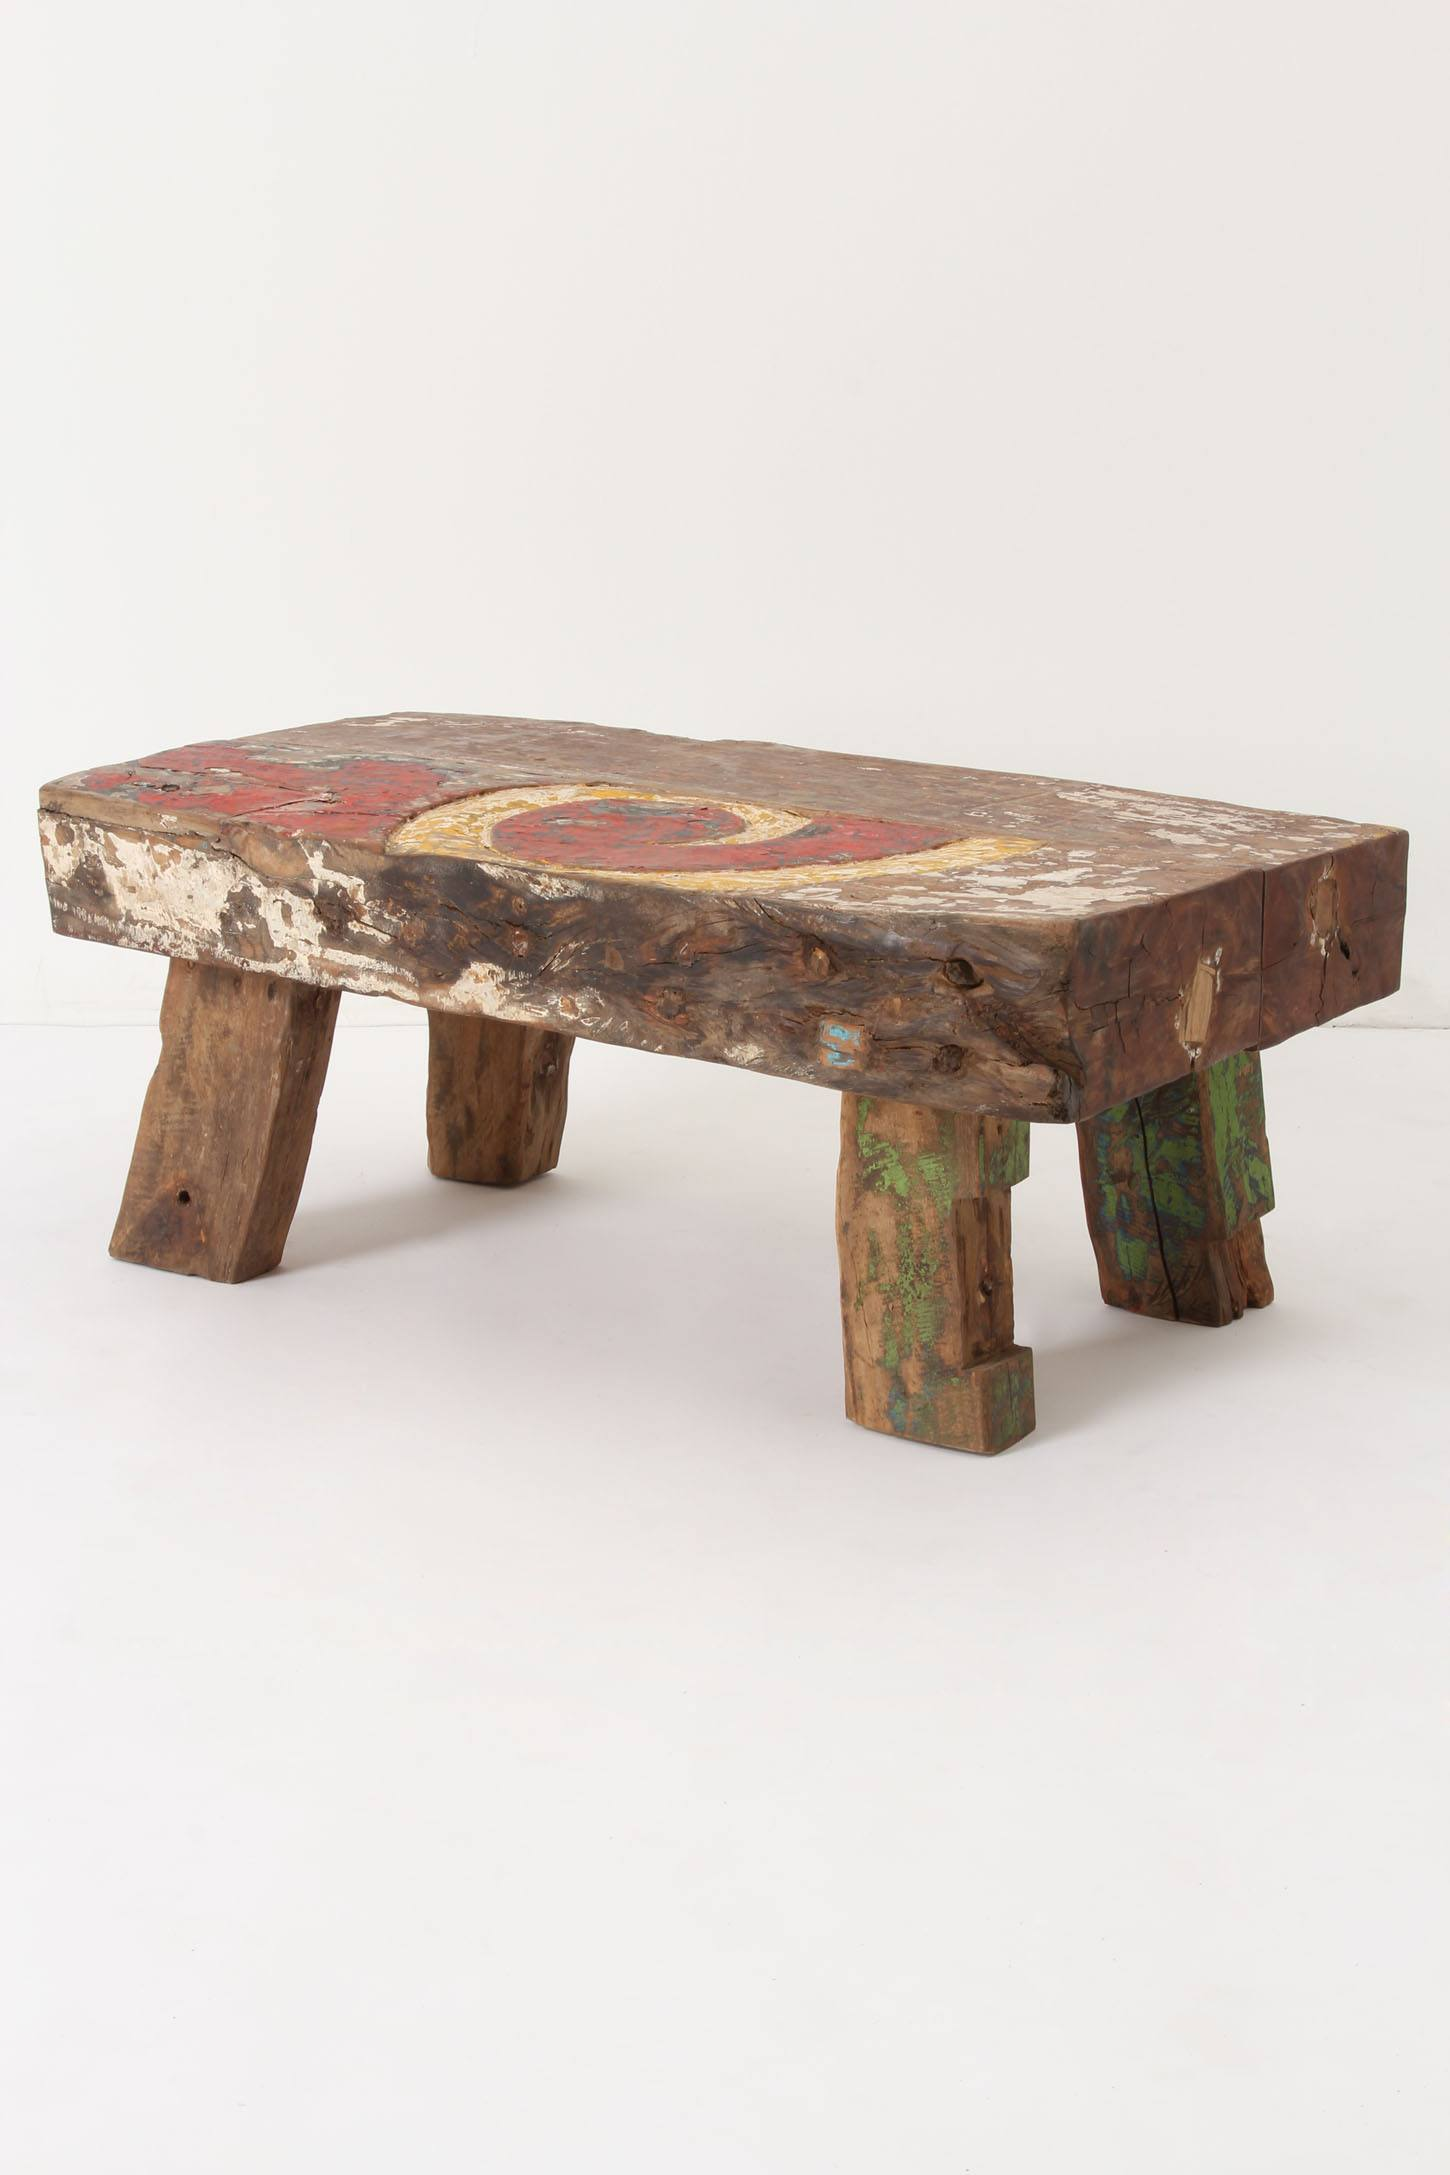 Slide View: 1: Reclaimed Boat Coffee Table